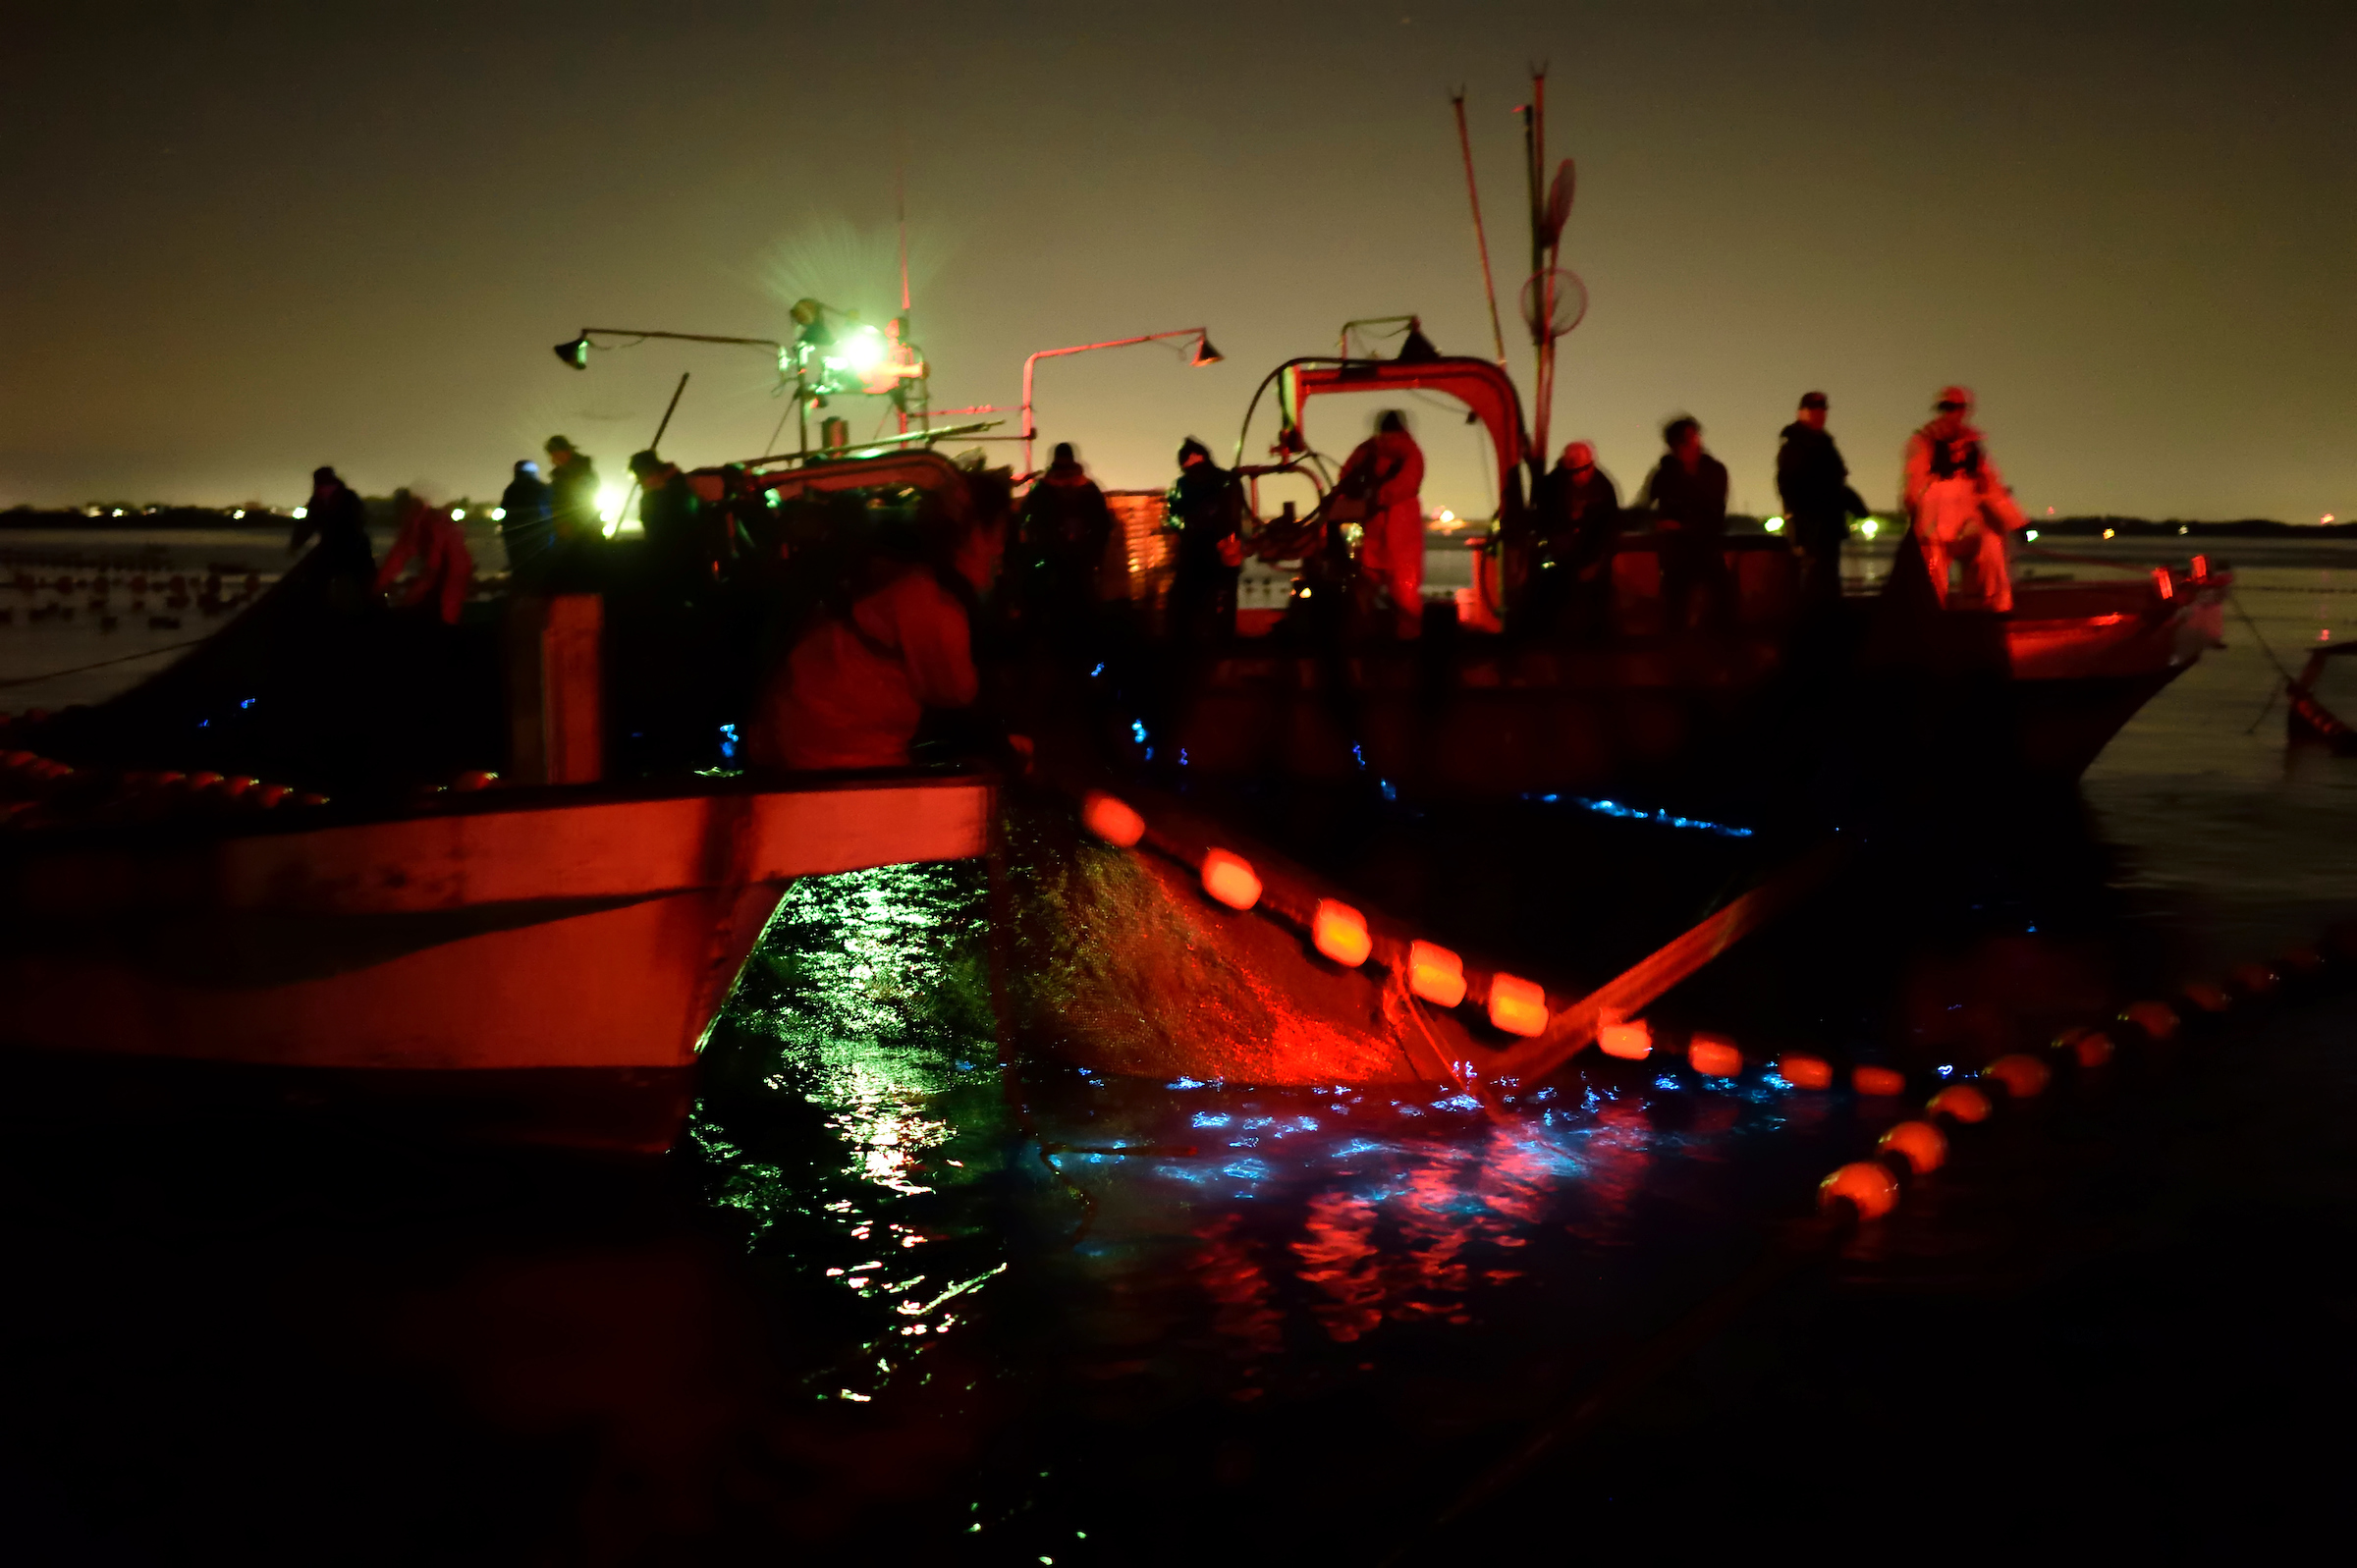 Commercial fishing vessels haul up nets filled with glowing firefly squid each spring in Toyama Bay.